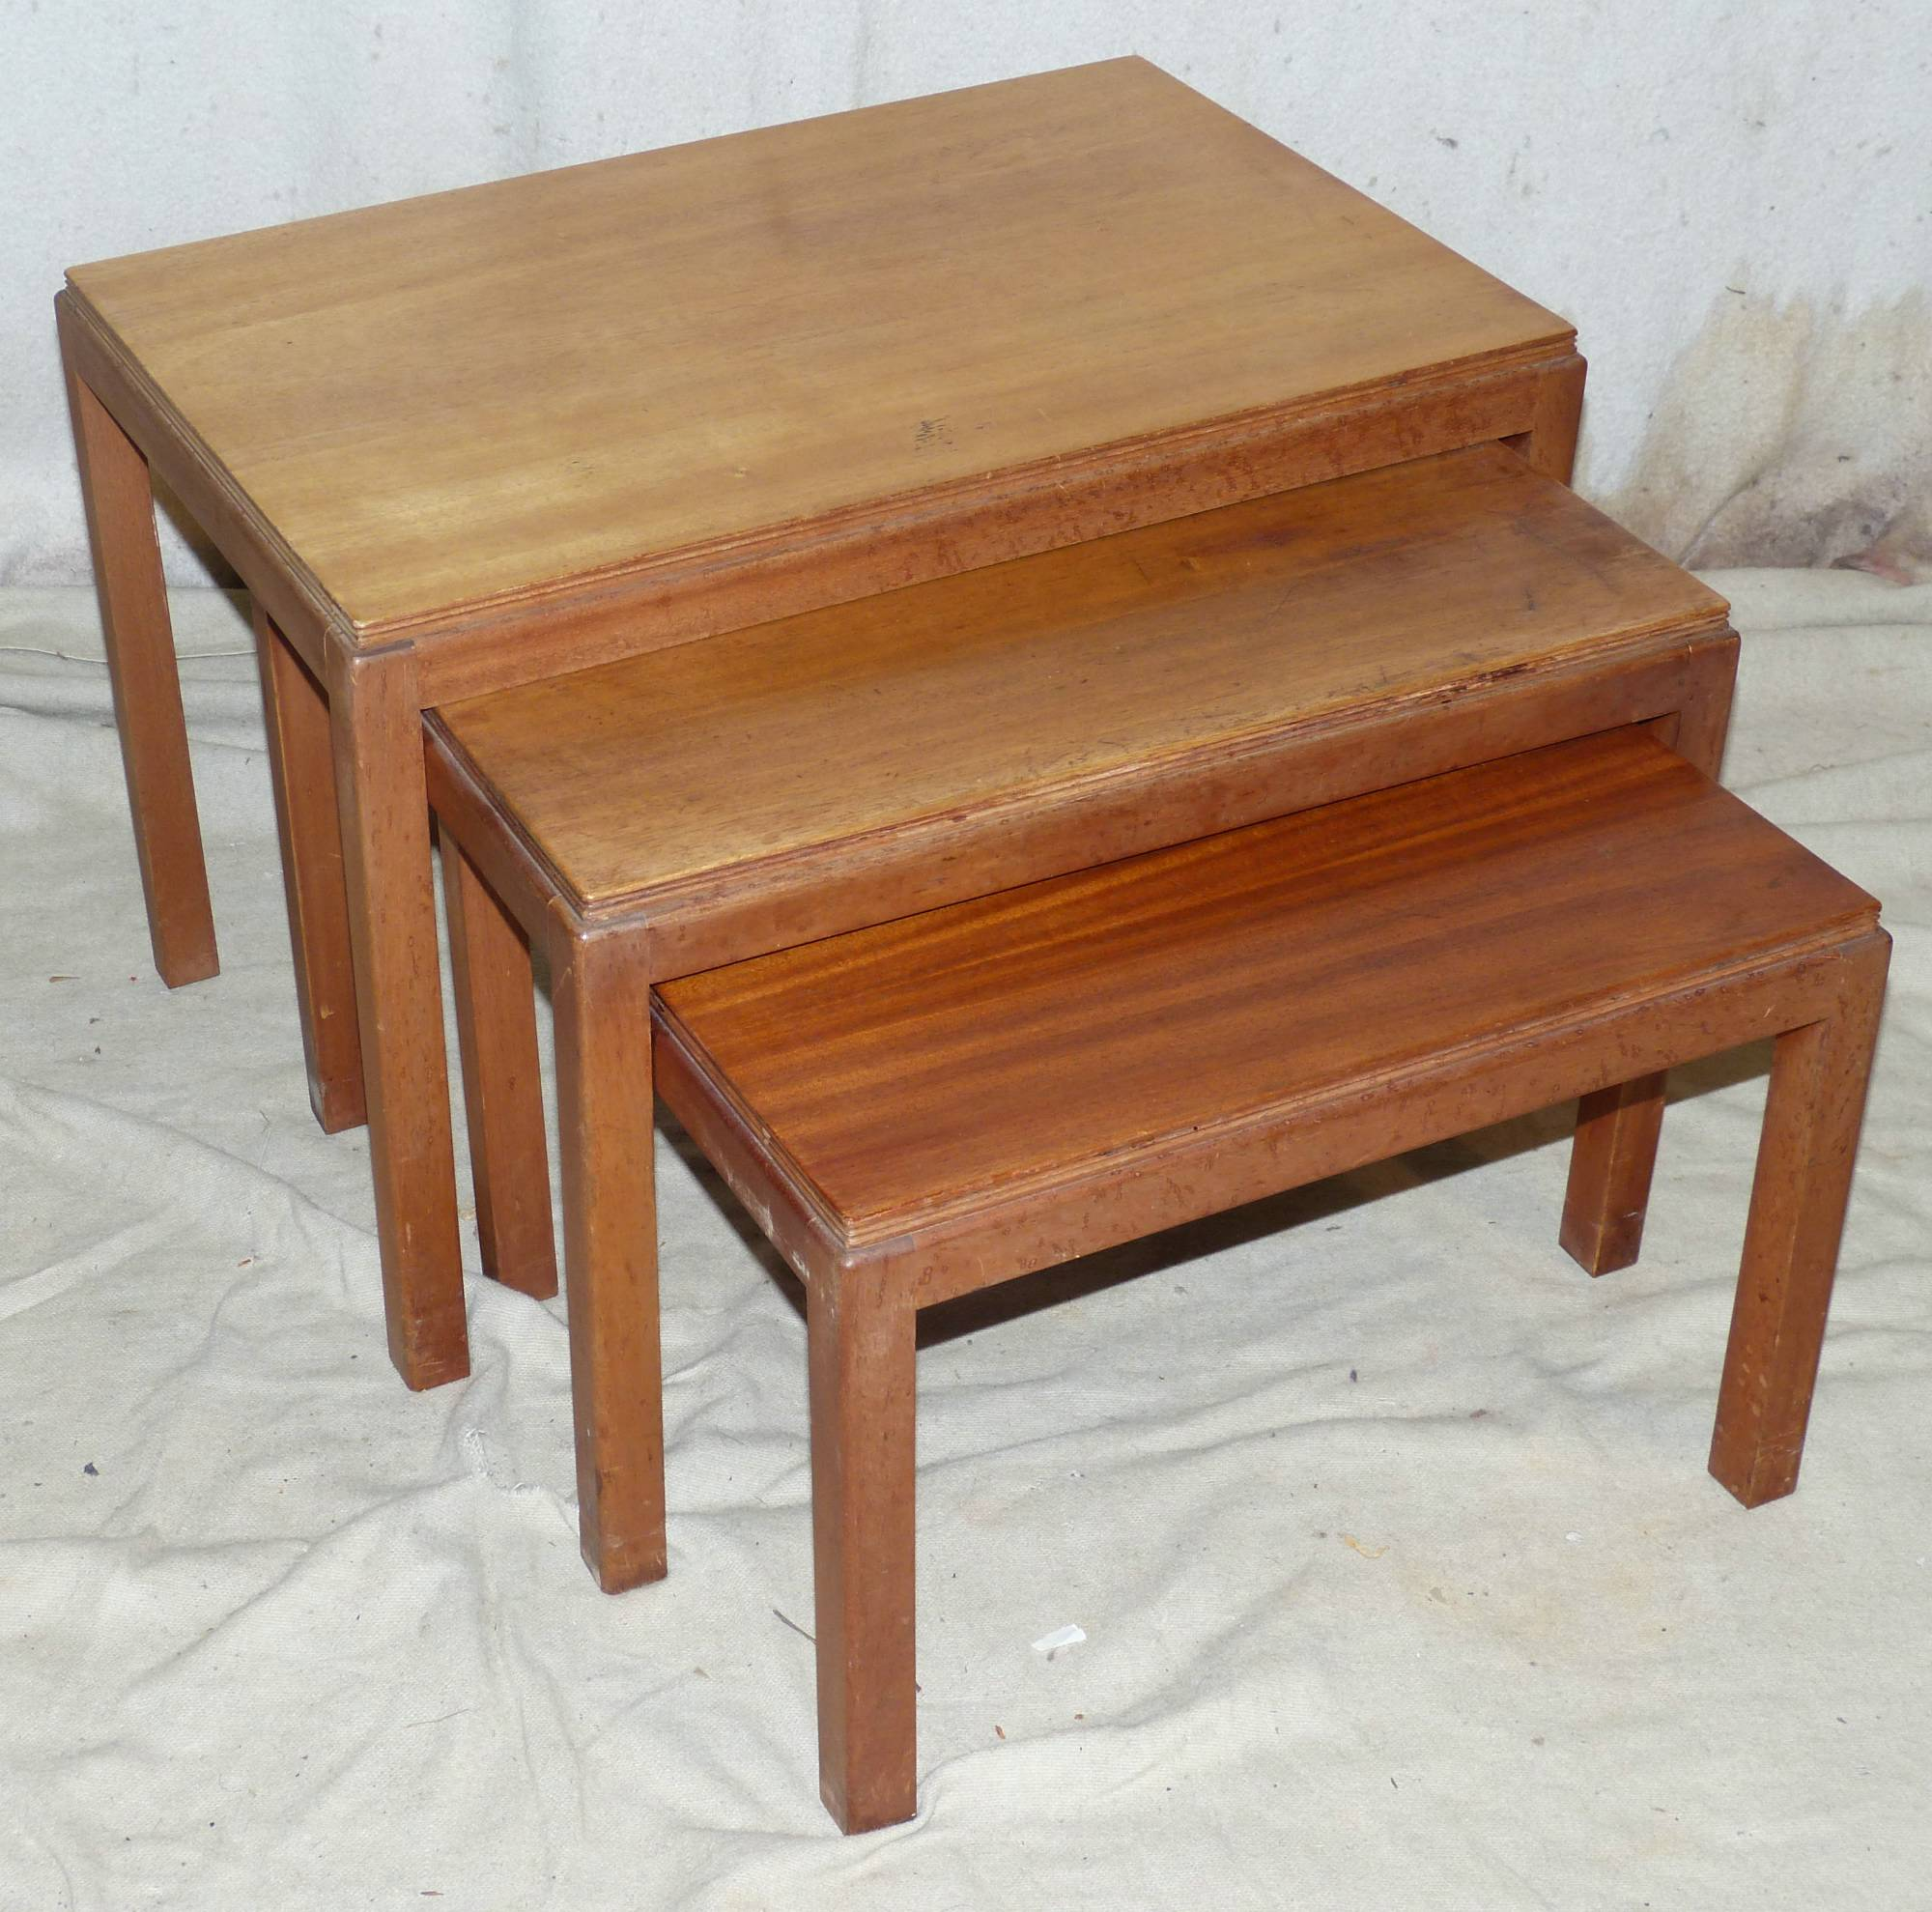 Gordon Russell Coffee Table A Nest Of 3 Gordon Russell Teak Coffee Tables On Square Legs